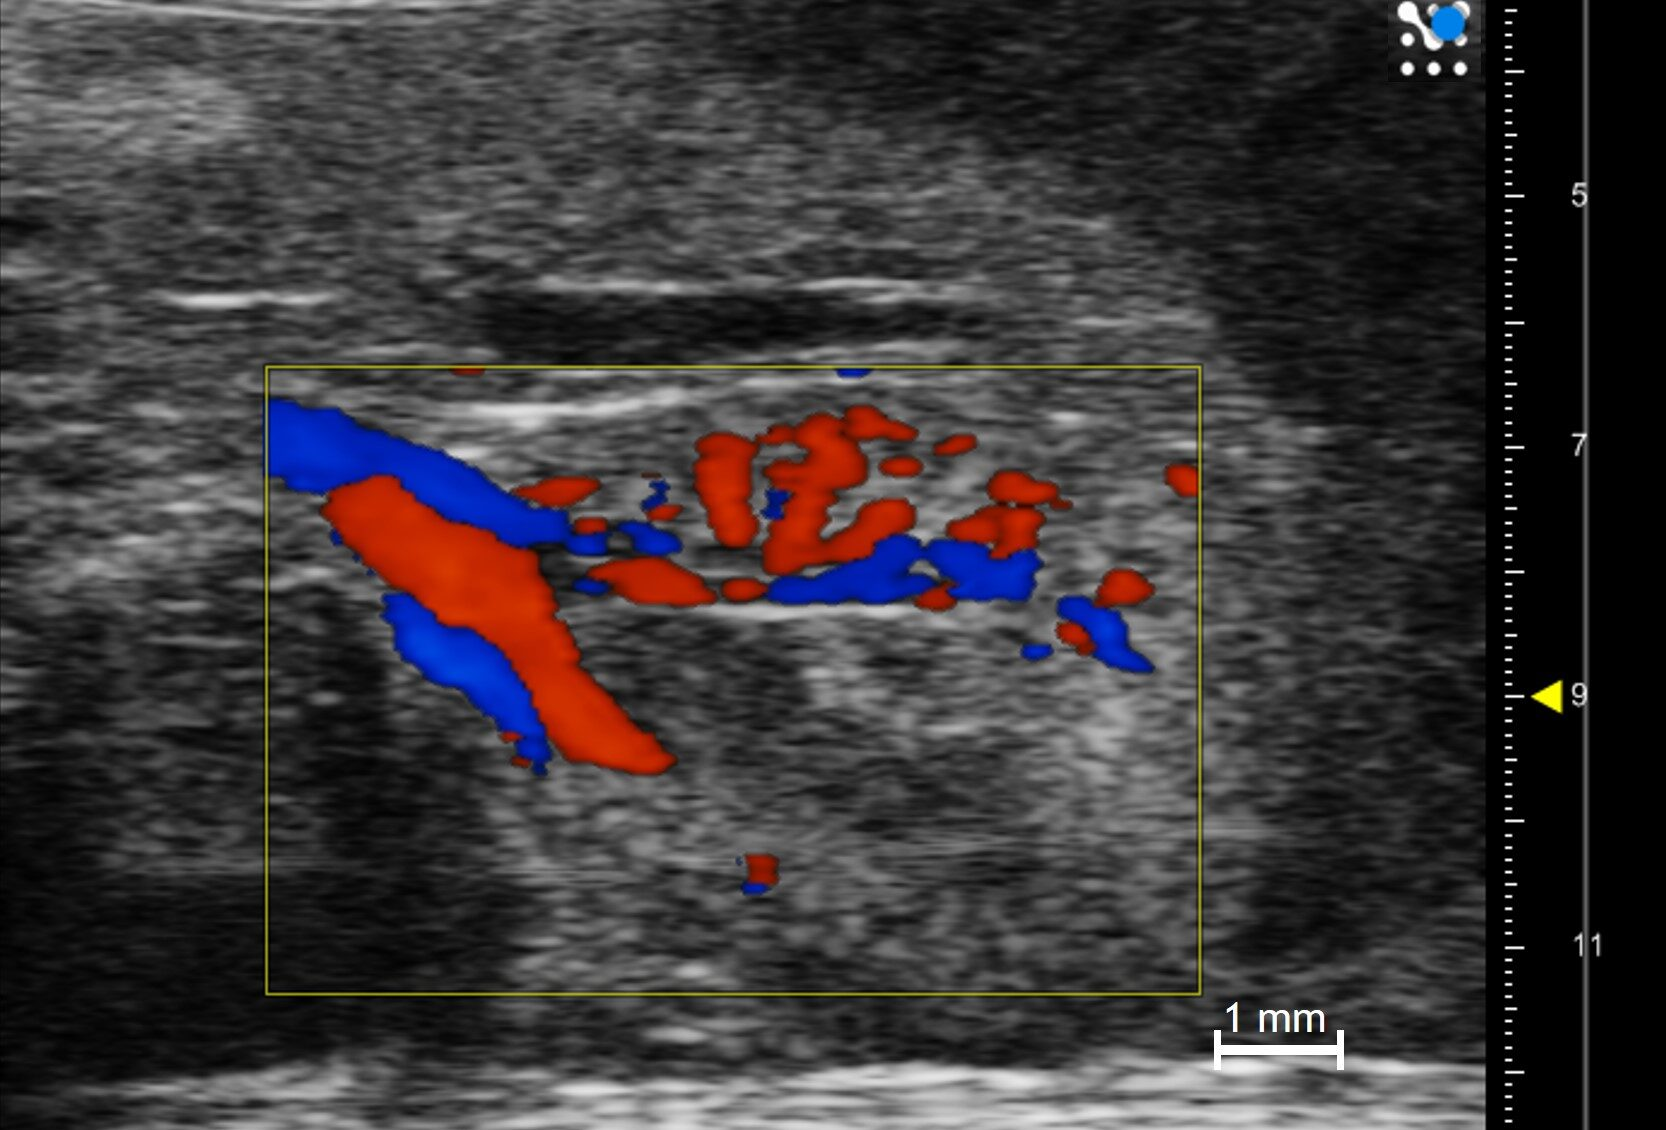 Renal function monitoring - Renal Vasculature with Color Doppler in a Mouse